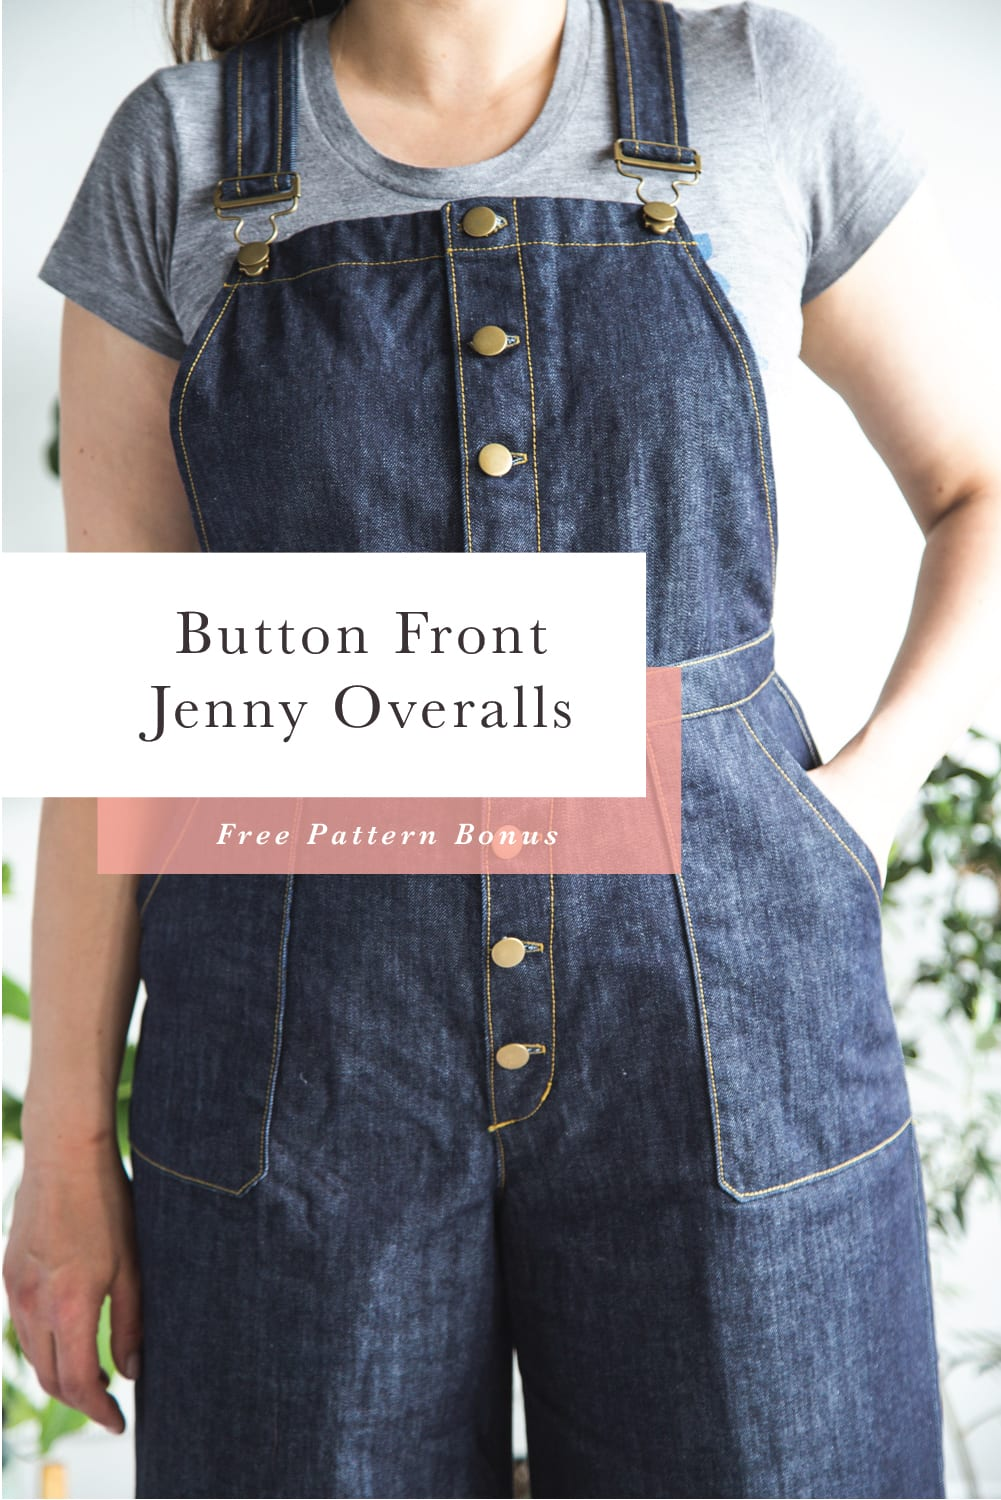 Free Pattern! Button Front Pattern Bonus for the Jenny Overalls // Closet Case Patterns